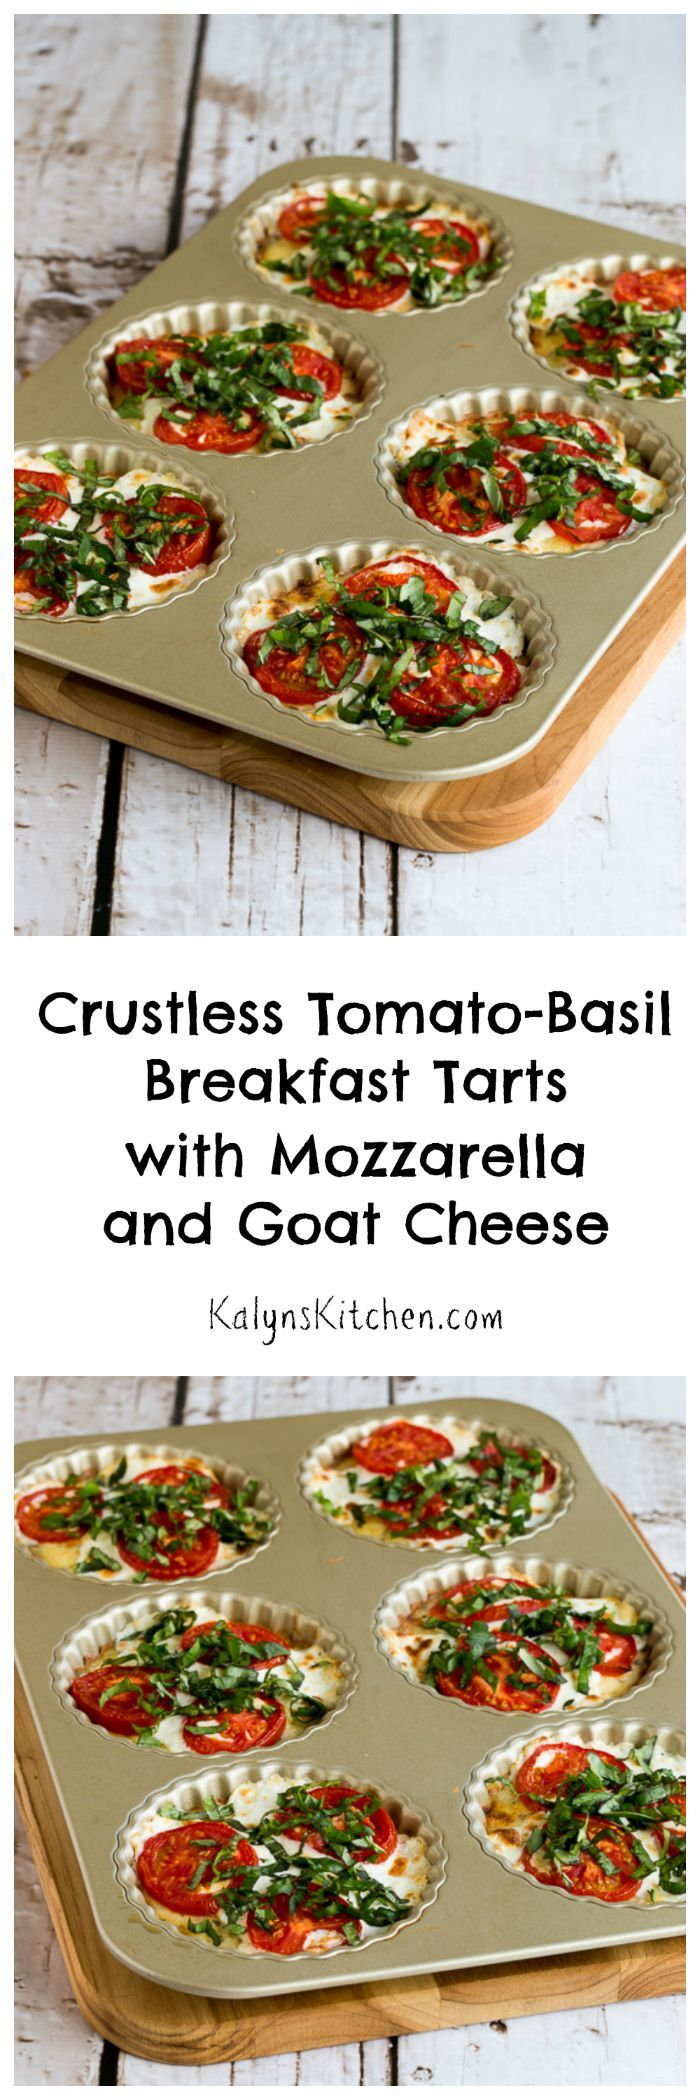 These Crustless Tomato-Basil Breakfast Tarts with Mozzarella and Goat Cheese are perfect for a meatless, low-carb, and gluten-free breakfast. Make them now while you can get juicy garden tomatoes! [from KalynsKitchen.com]